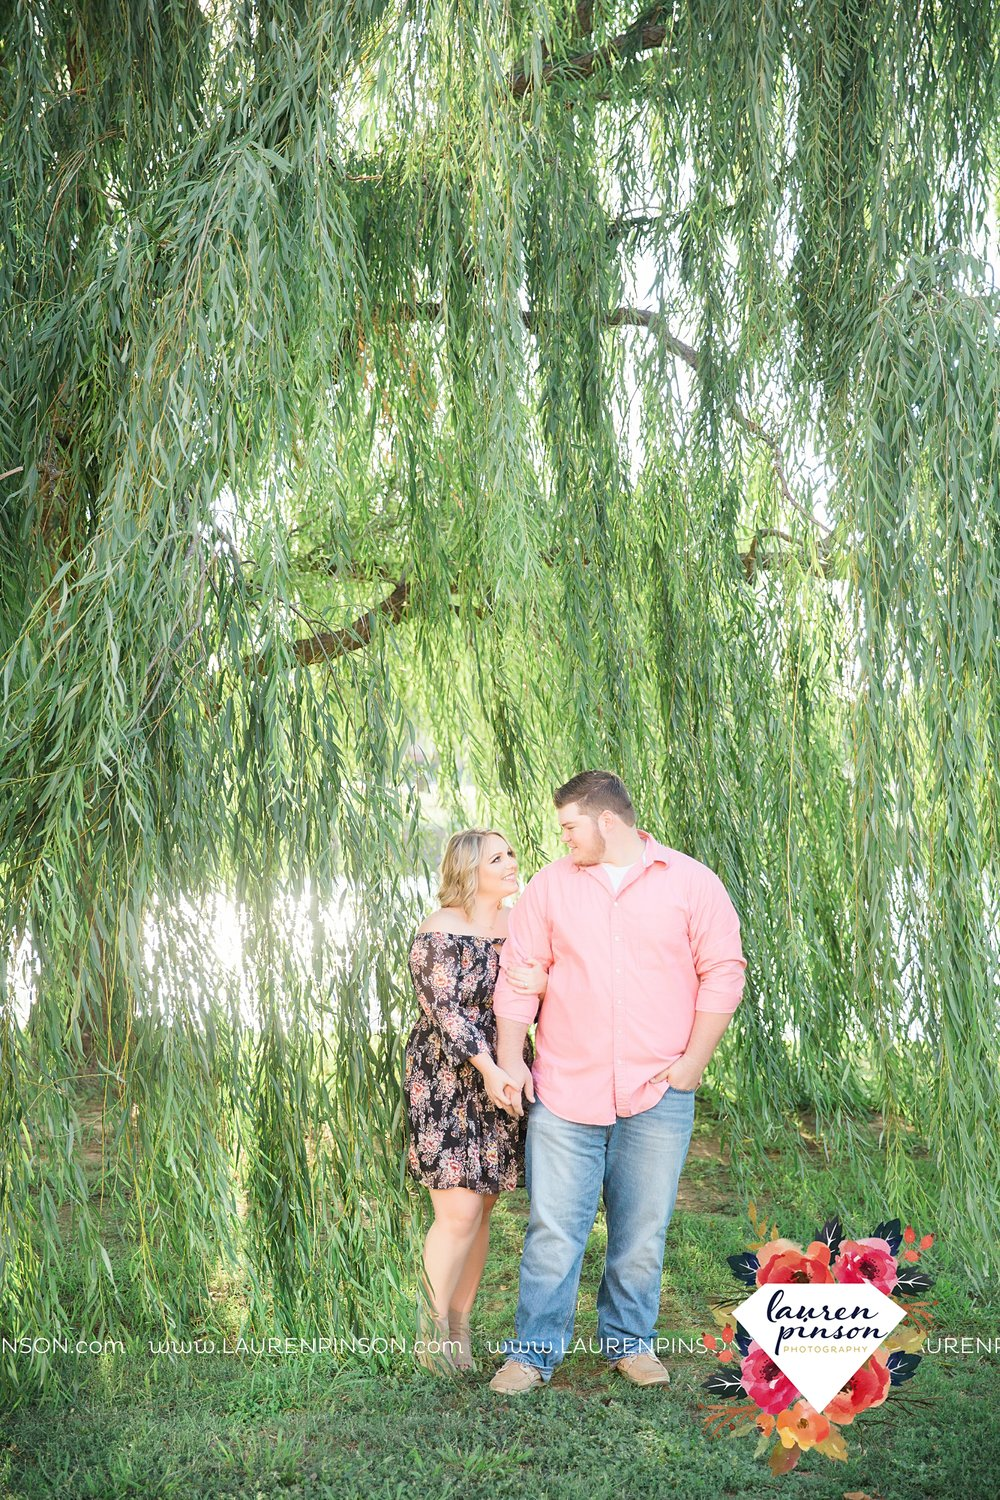 wichita-falls-engagement-and-wedding-photographer-lauren-pinson-photography_3642.jpg